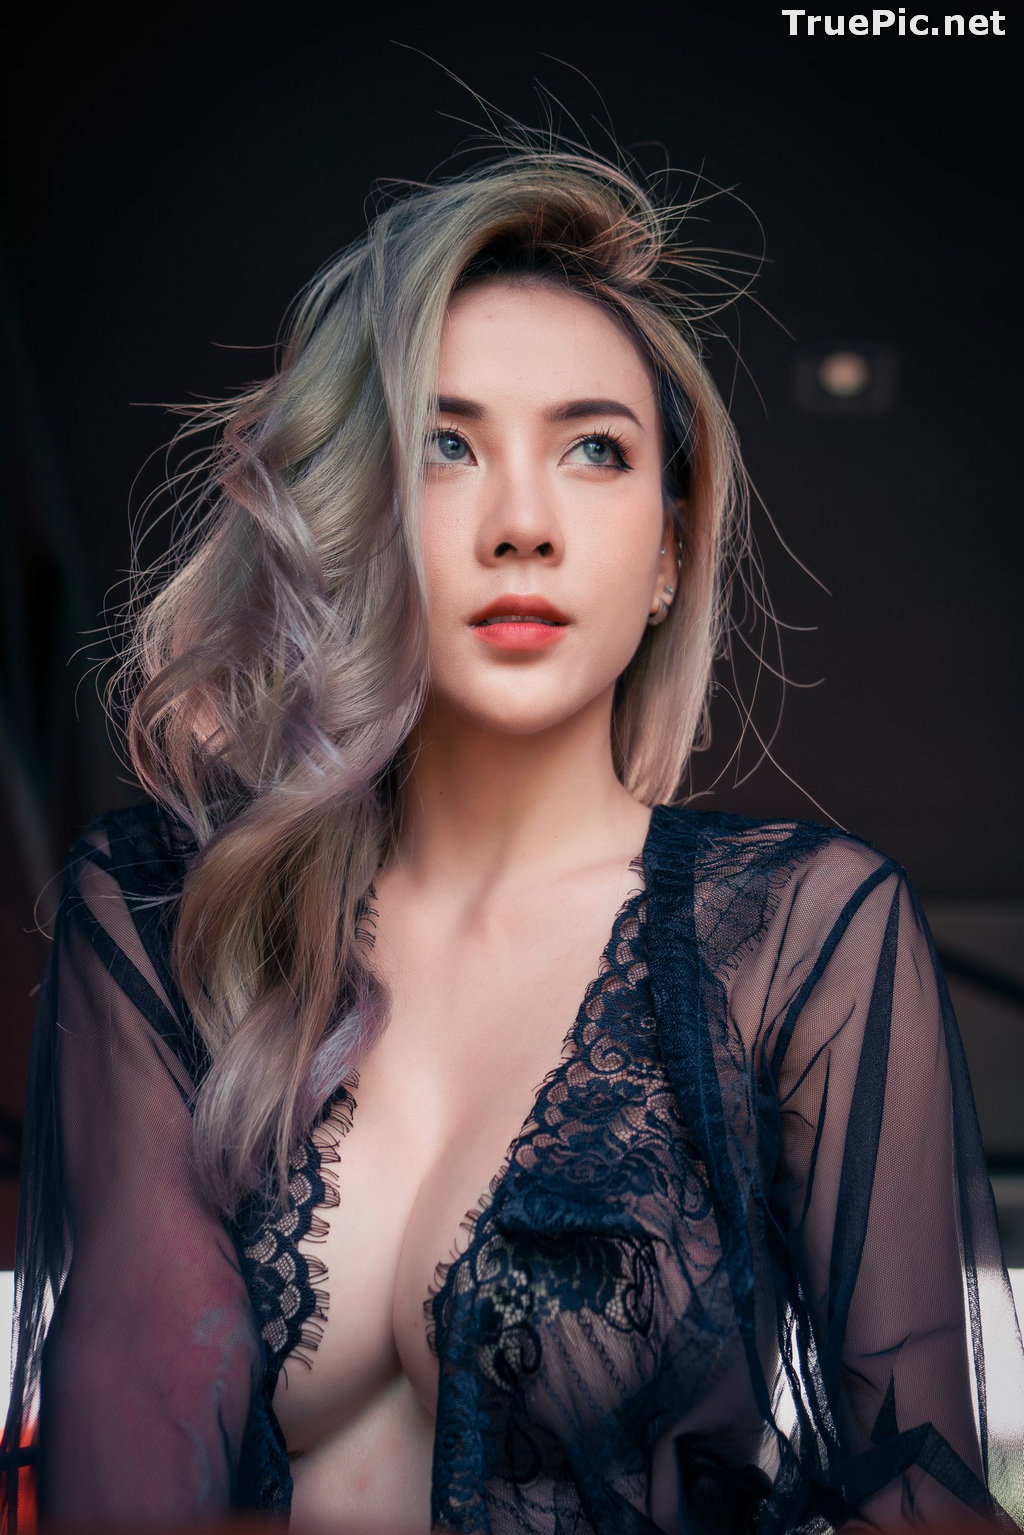 Image Thailand Model – Soraya Upaiprom (น้องอูม) – Beautiful Picture 2021 Collection - TruePic.net - Picture-74